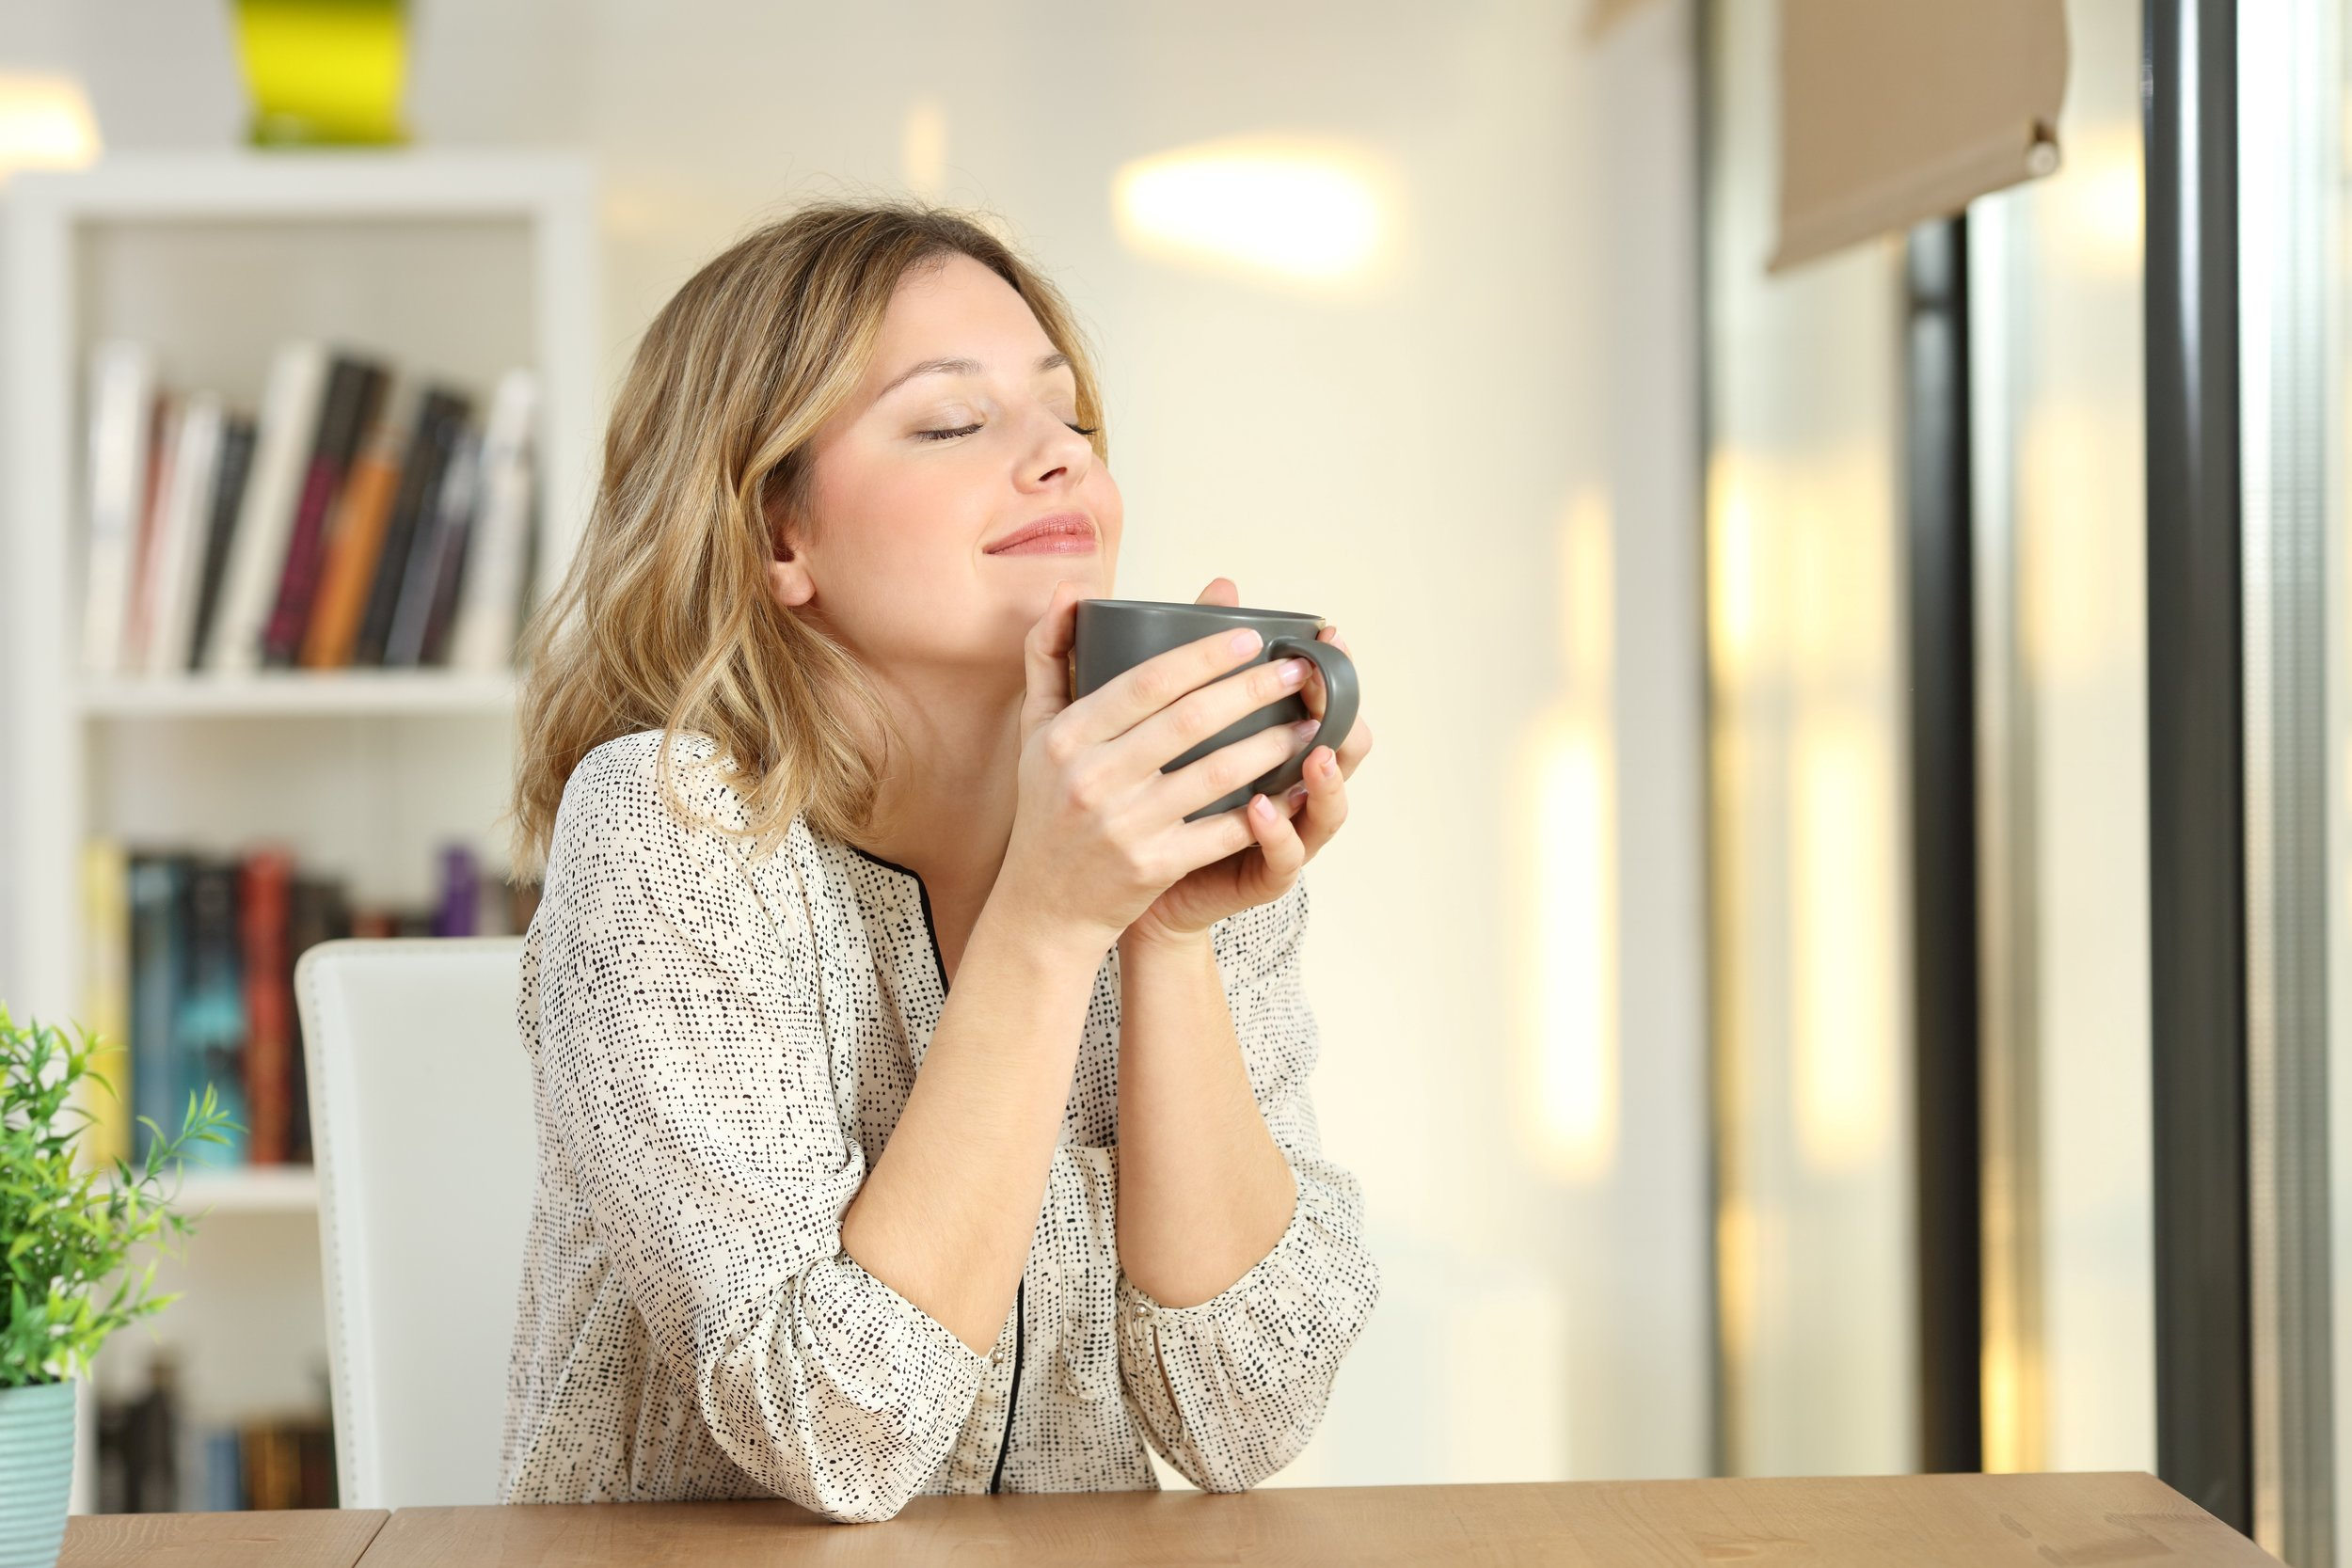 woman sipping coffee postcard.jpg